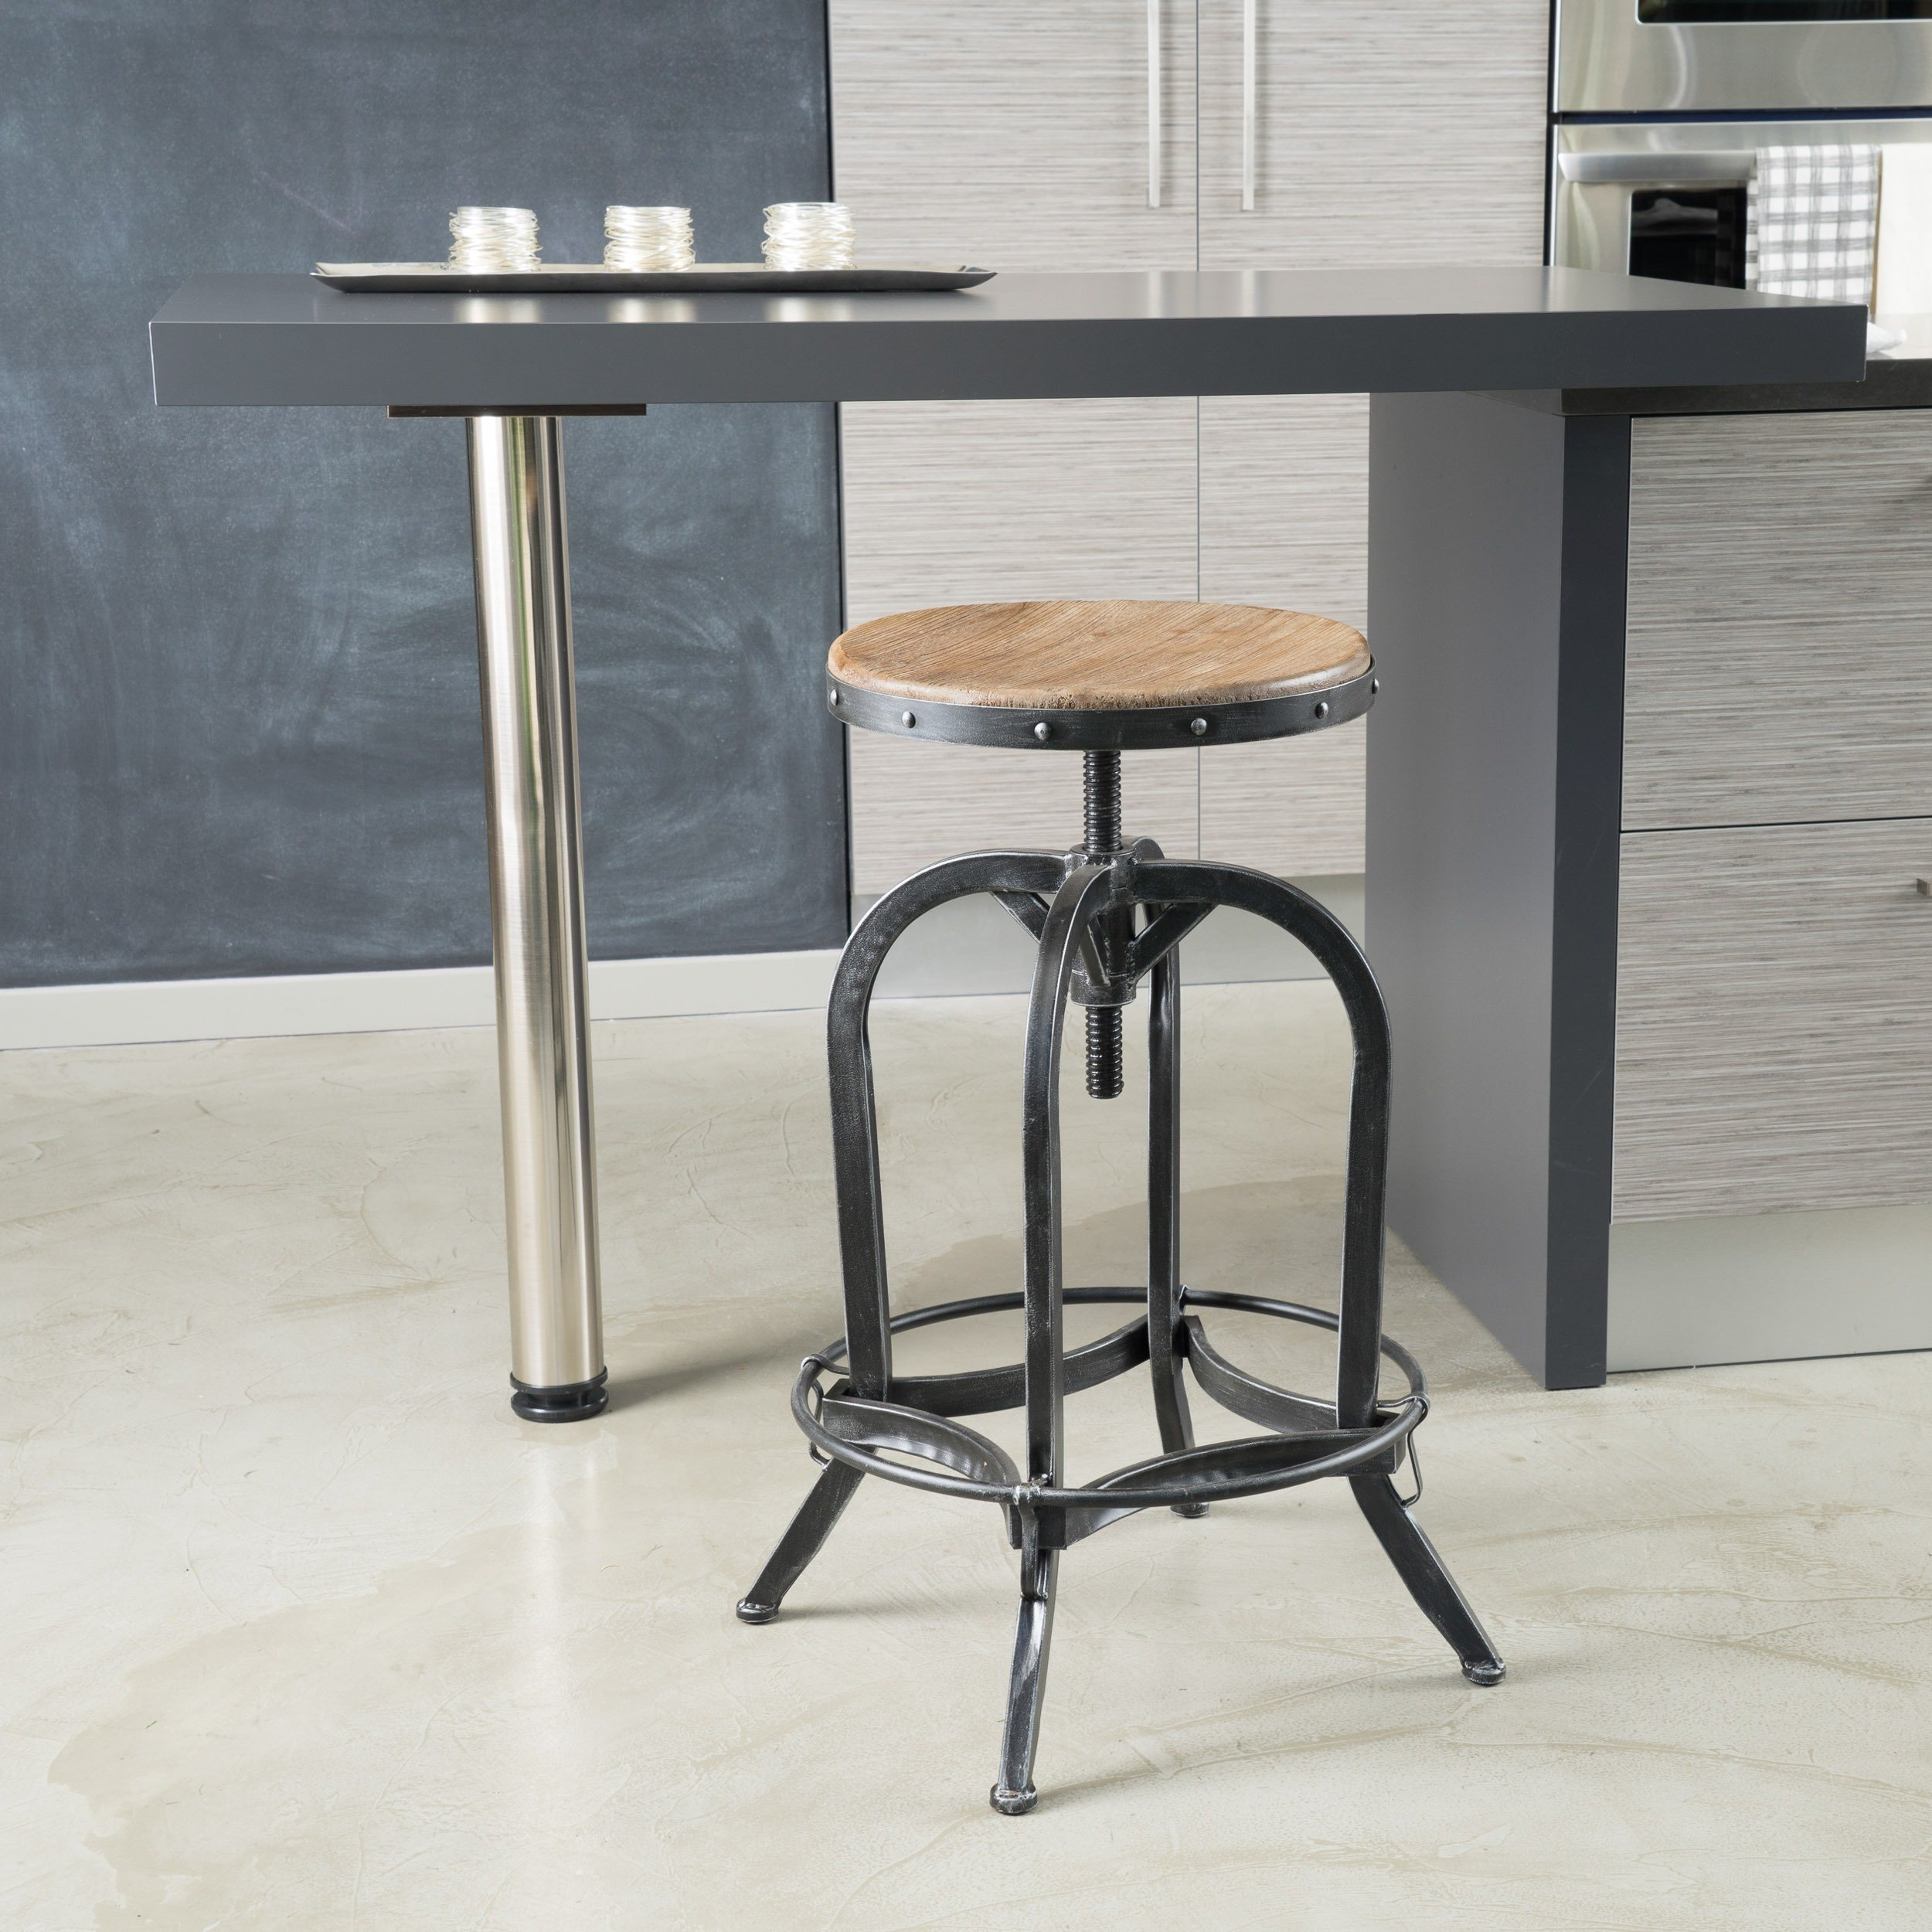 Adjustable Natural Fir Wood Finish Barstool Steel Base Industrial Look. 26-32.9 Inches High